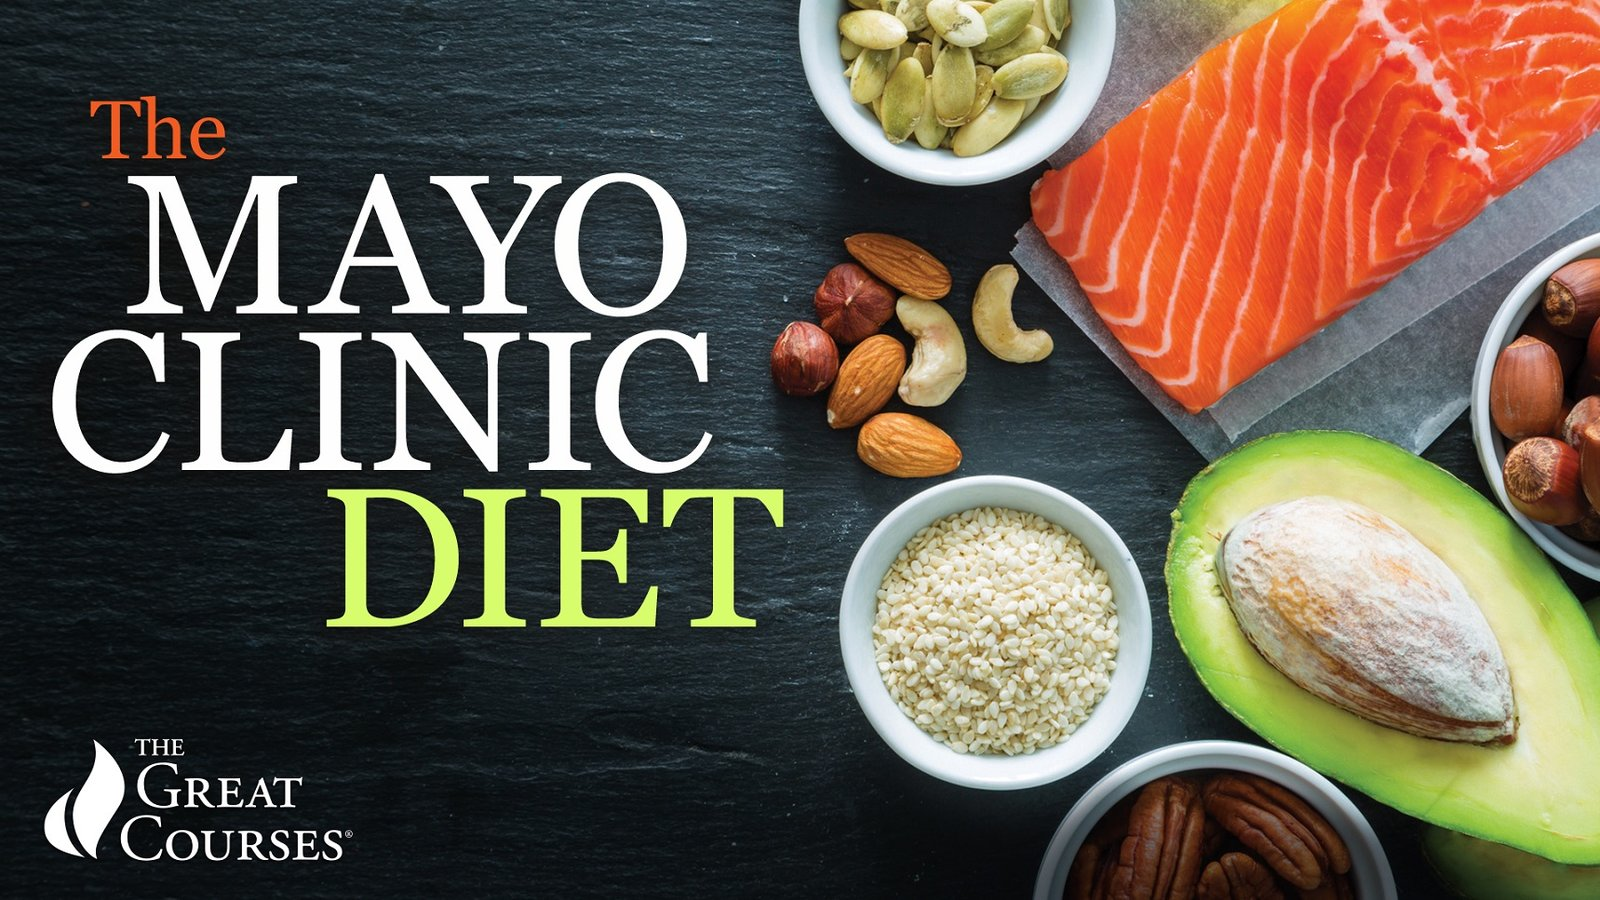 The Mayo Clinic Diet - The Healthy Approach to Weight Loss